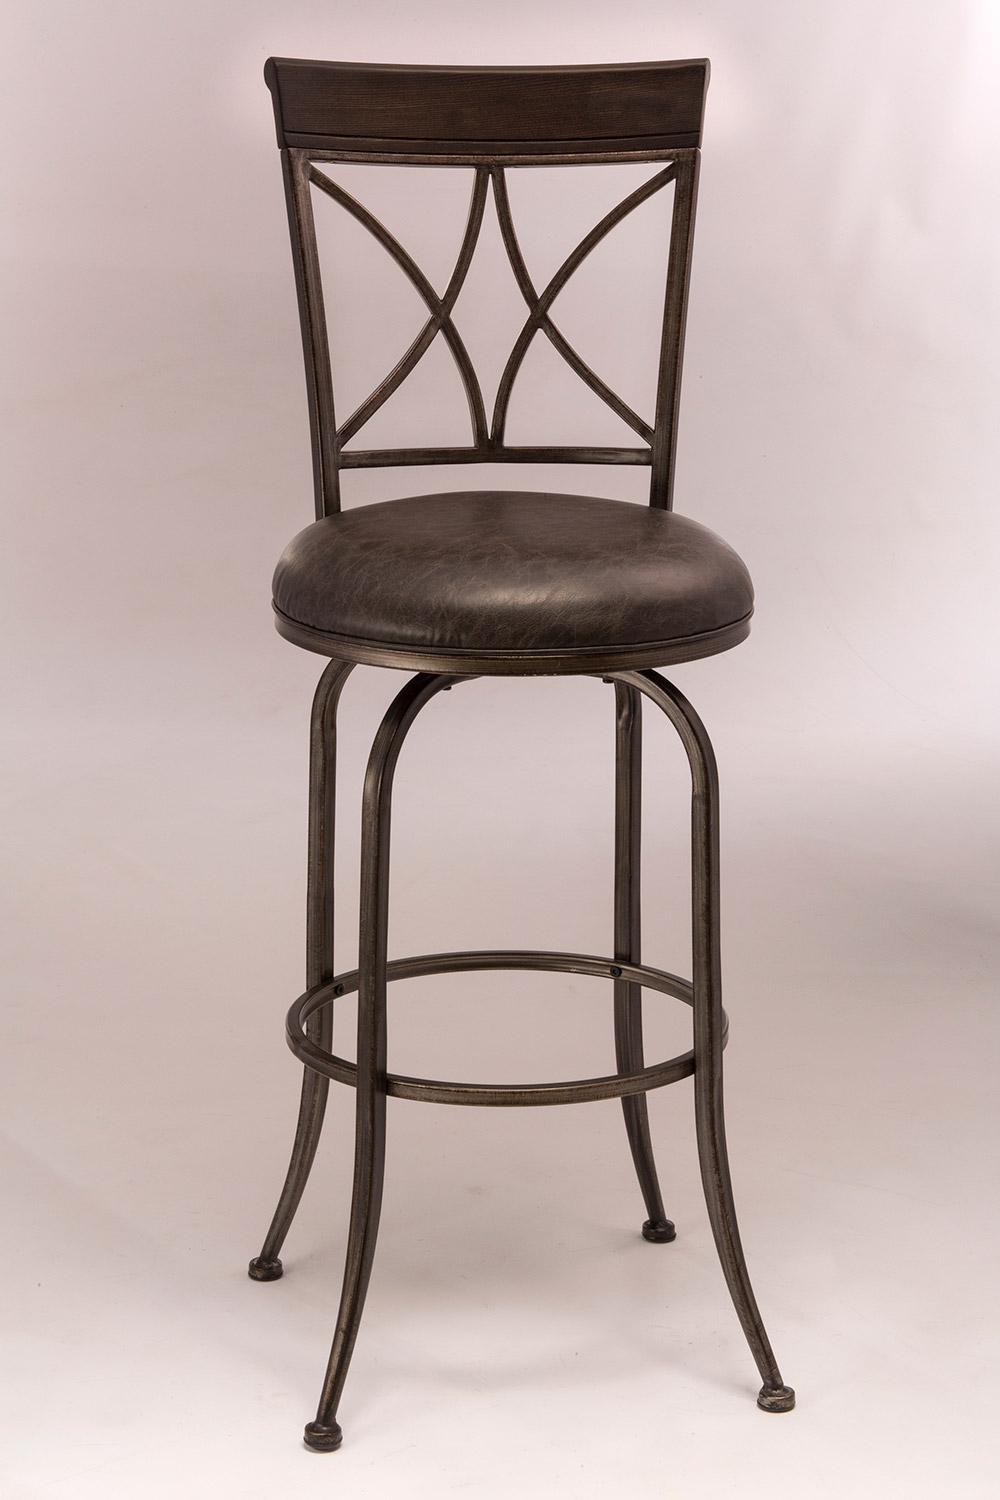 Hillsdale Killona Swivel Bar Stool - Antique Pewter